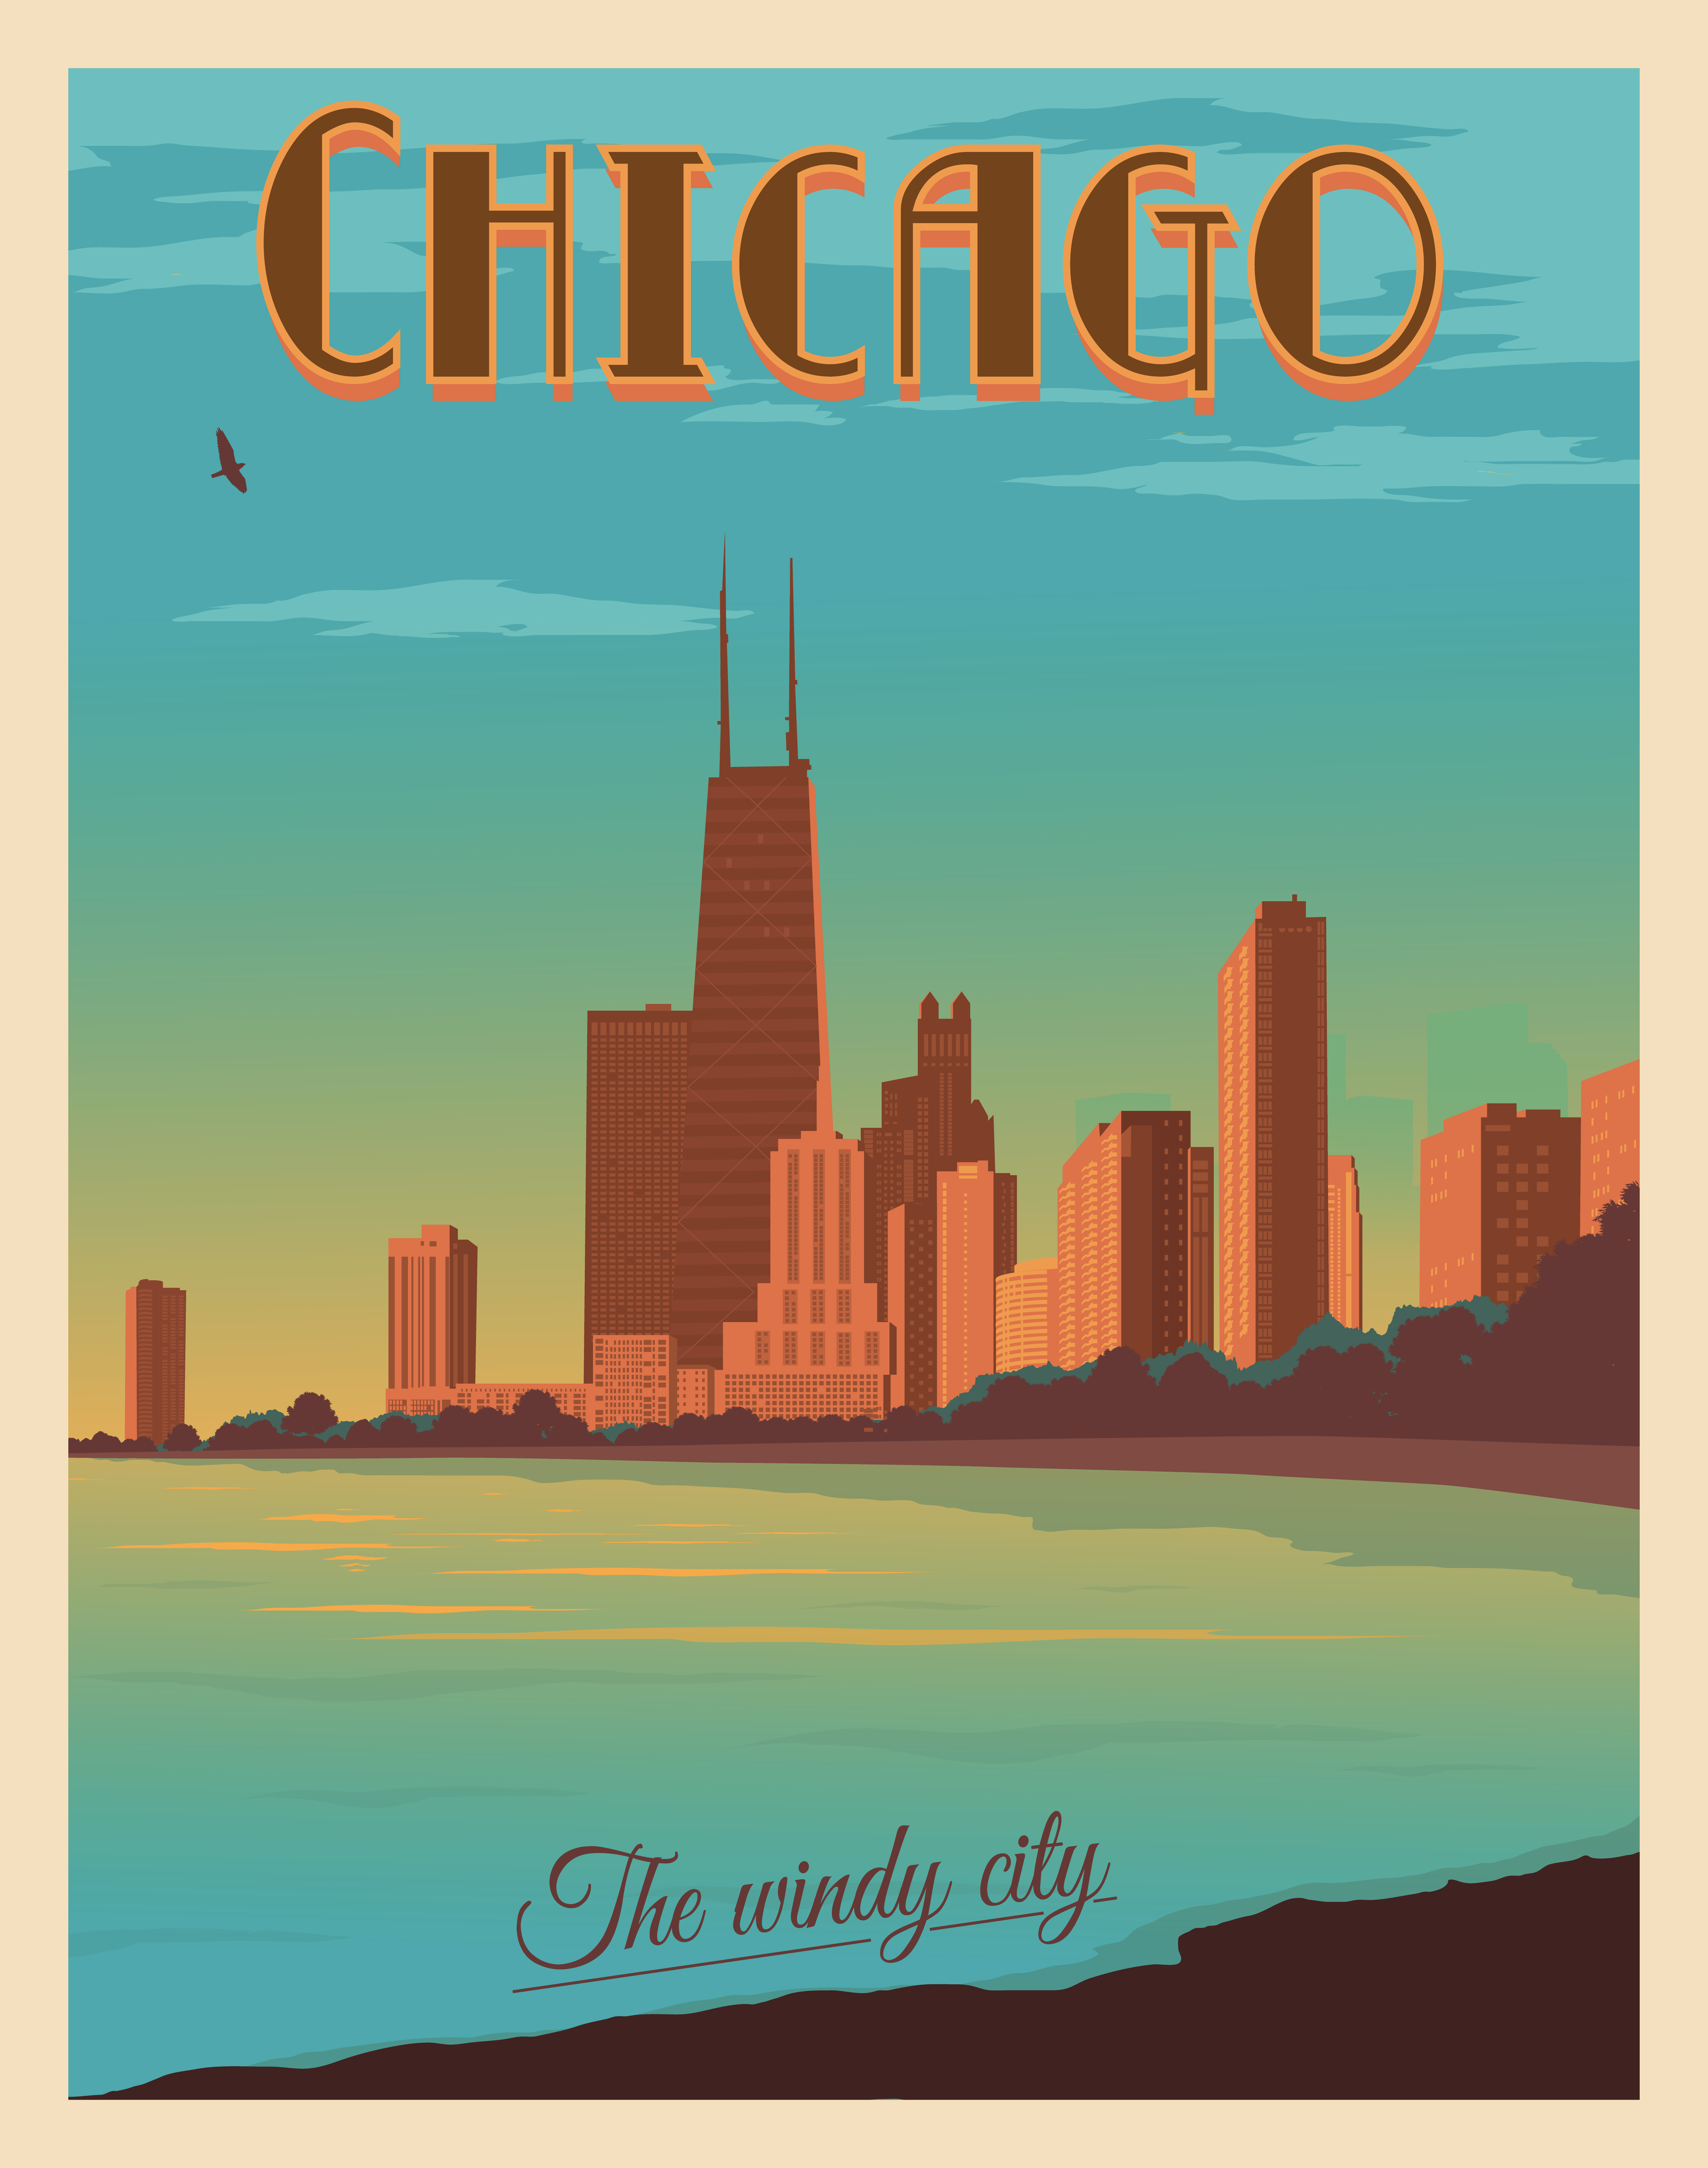 VINTAGE CHICAGO TRAVEL A2 POSTER PRINT